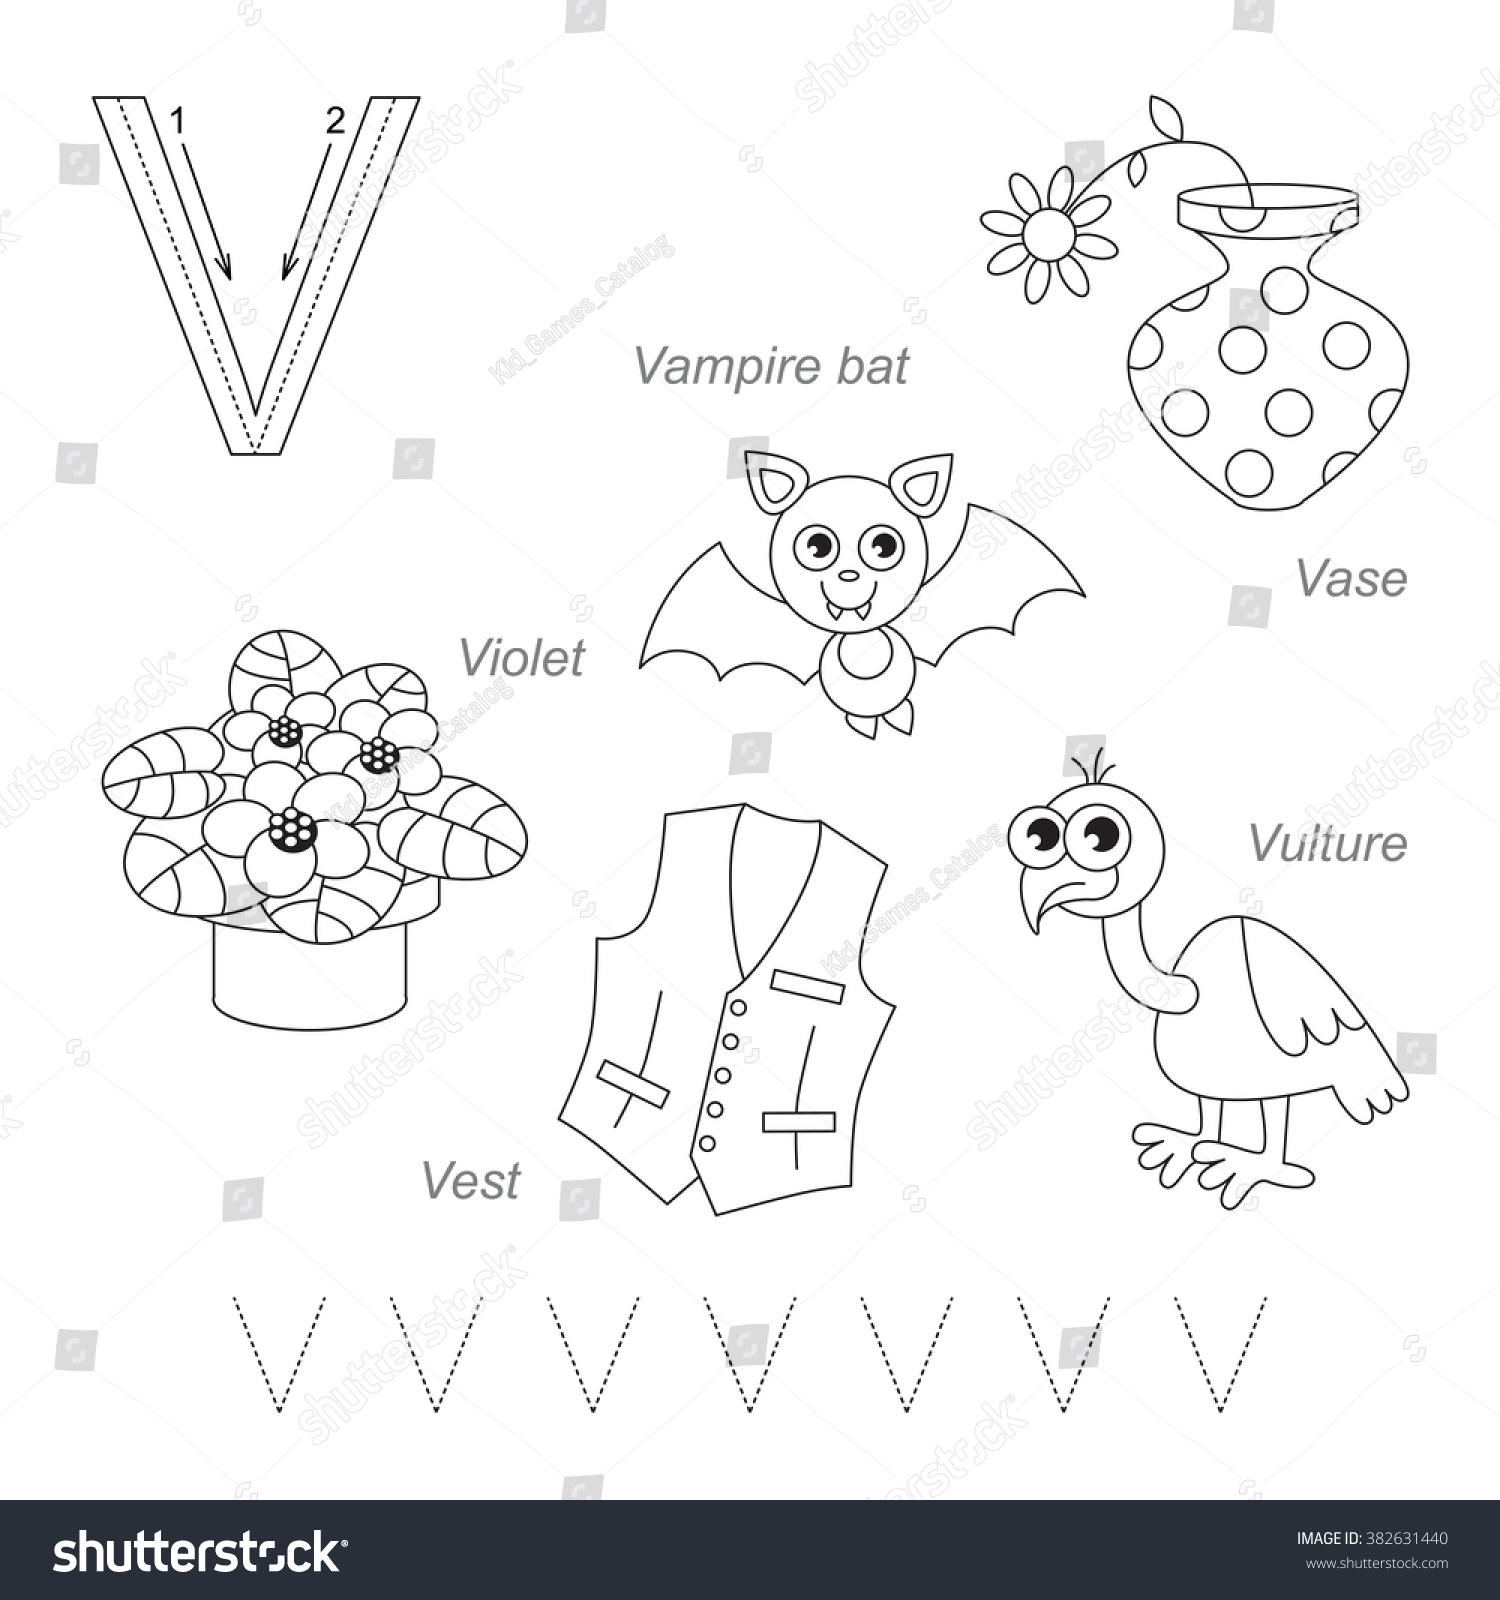 Tracing Worksheet For Children Full English Alphabet From